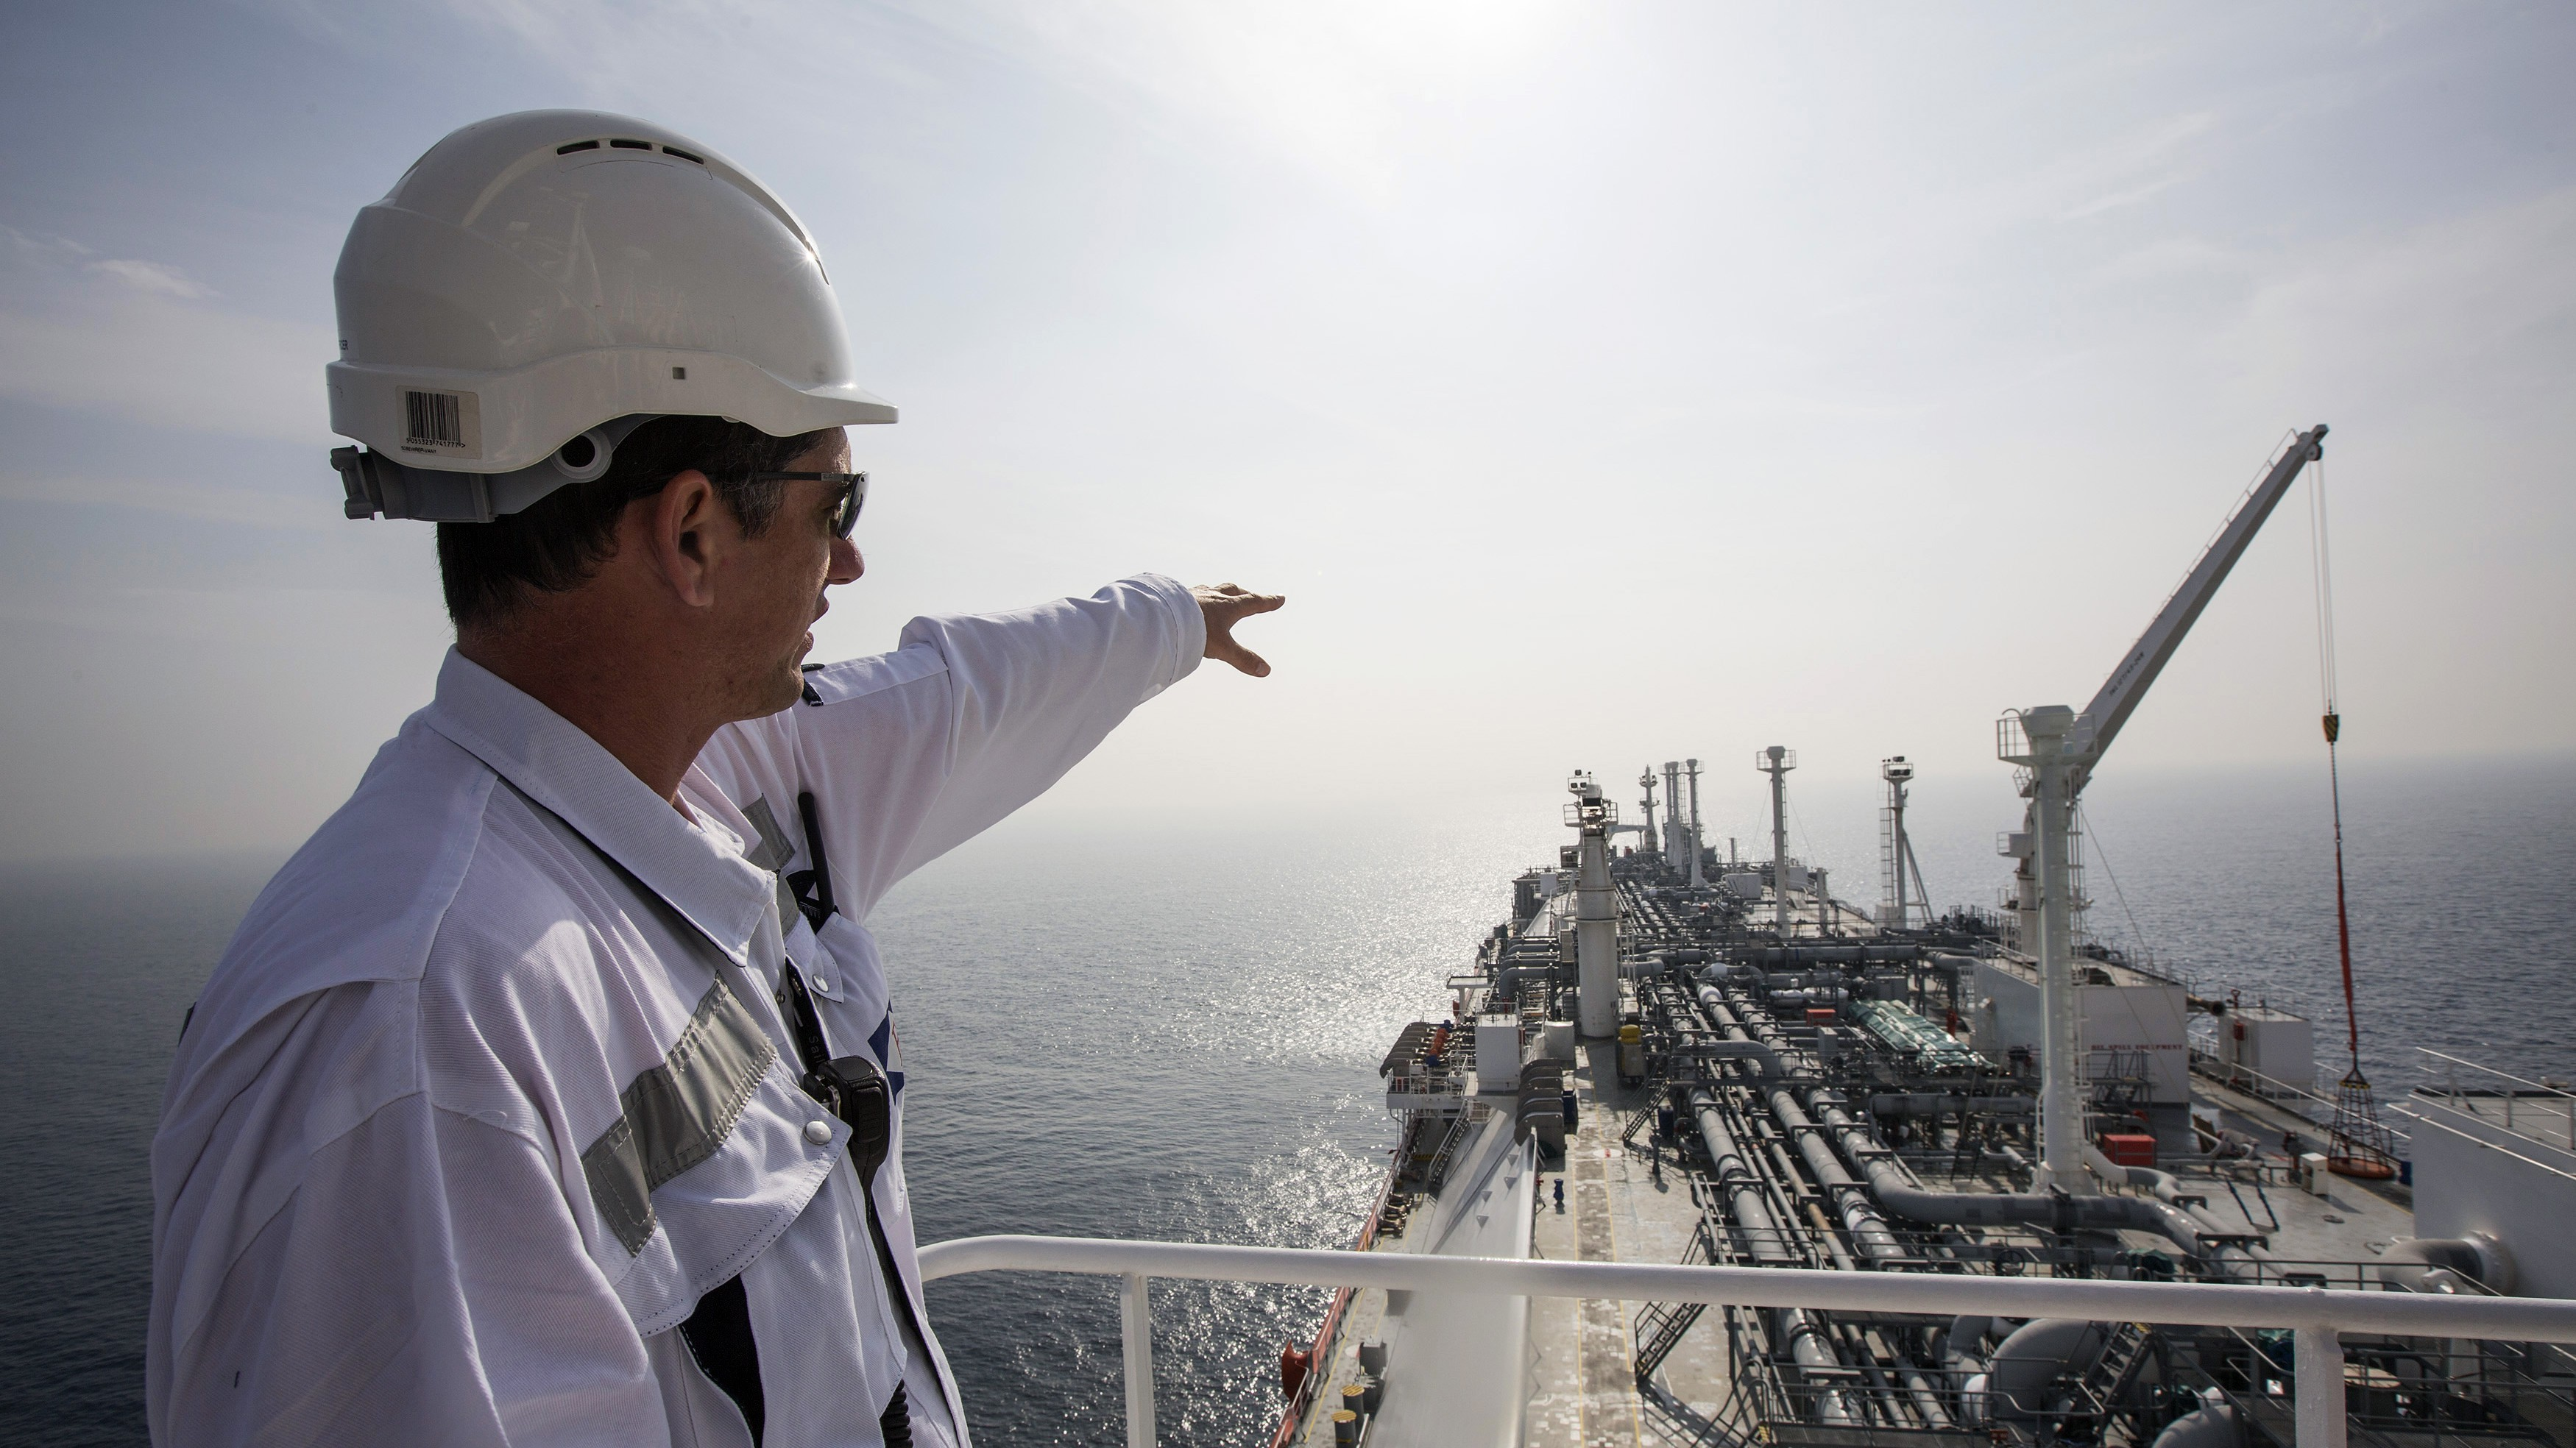 """An officer points as he stands on a tanker carrying liquefied natural gas in the Mediterranean, some 10 km (6 miles) from the coastal Israeli city of Hadera January 22, 2014. Permanently anchored in the choppy waters of the eastern Mediterranean, the tanker Excellence is in a constant state of alert, waiting for the emergency phone call that Israel needs fuel. The gas, imported and stored in liquid form on the tanker, can be """"regassified"""" and pumped through a special buoy into an underwater pipeline, providing the Israeli Electric Corp its auxiliary supplies. Picture taken January 22, 2014. REUTERS/Baz Ratner (ISRAEL - Tags: ENERGY BUSINESS) - RTX181TU"""